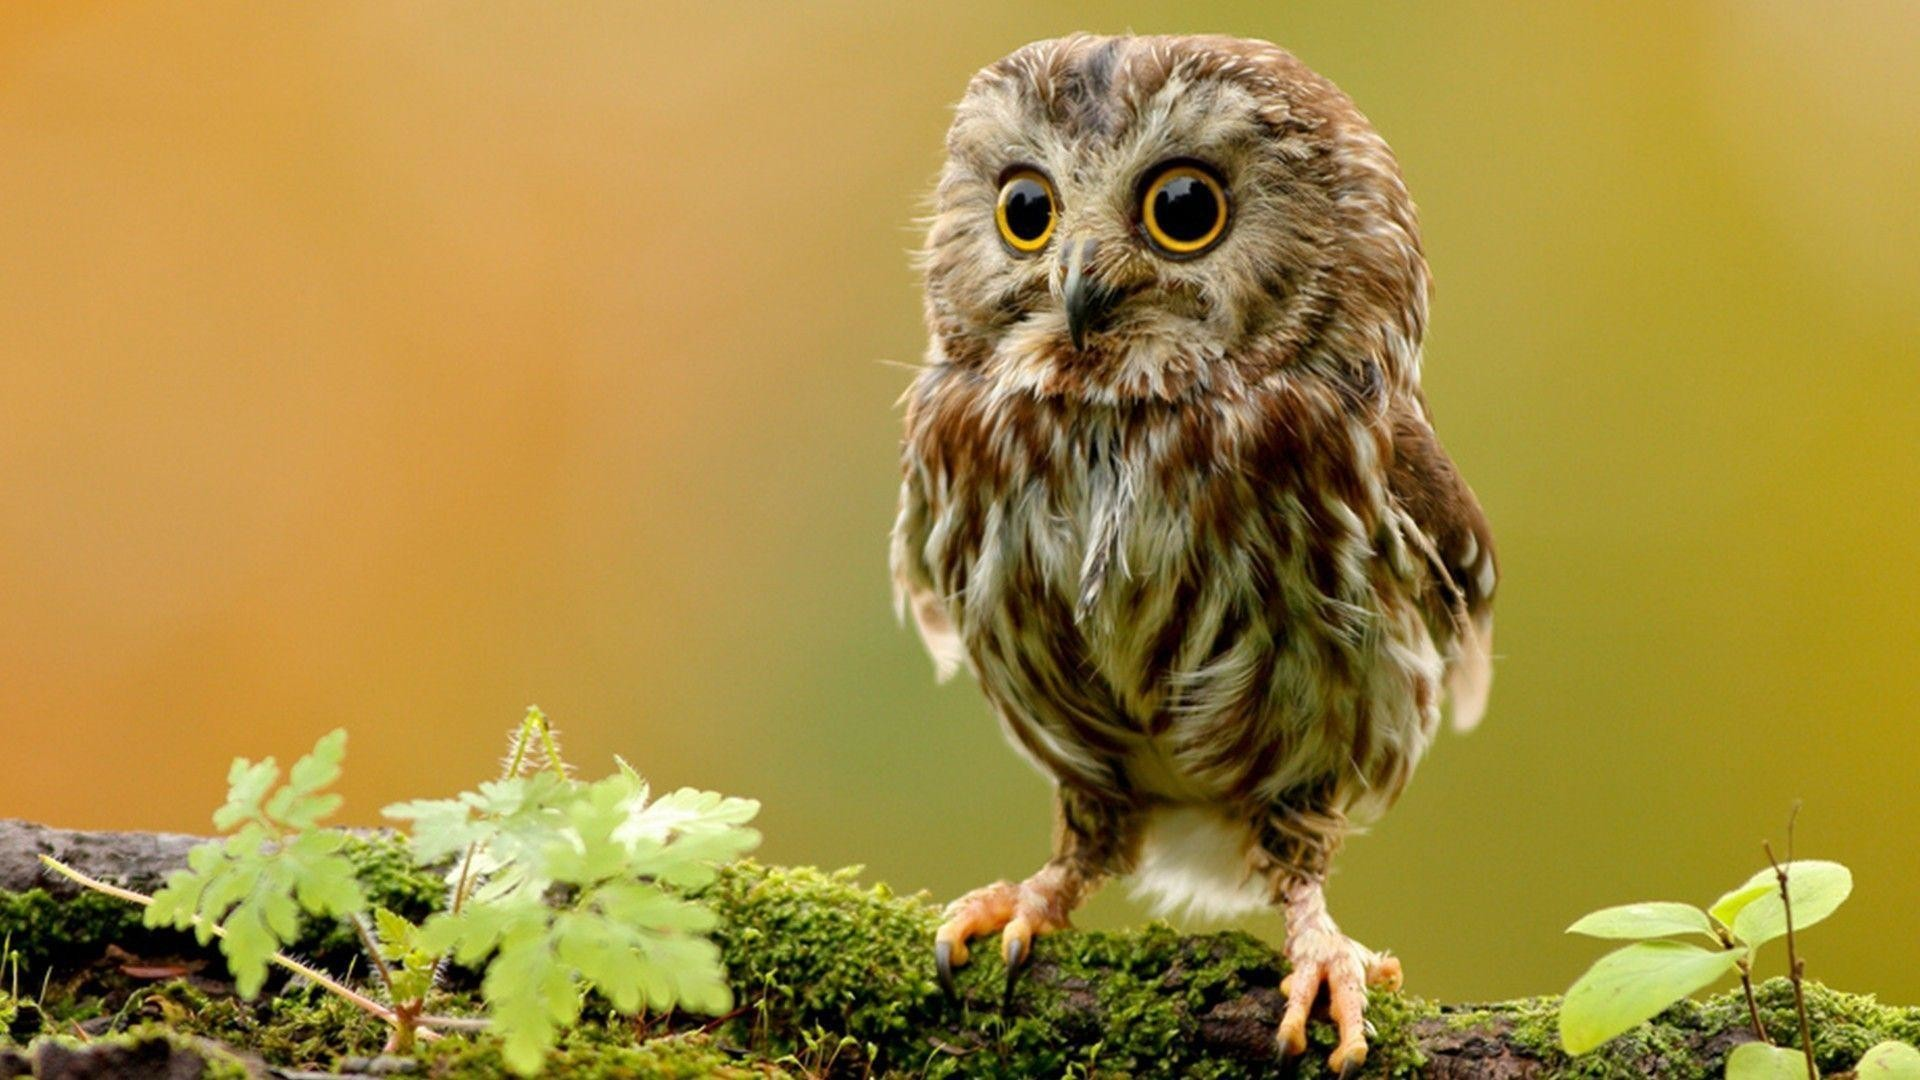 Cute owl wallpaper 66 images 1920x1080 cute owl wallpaper download wallpapers voltagebd Image collections